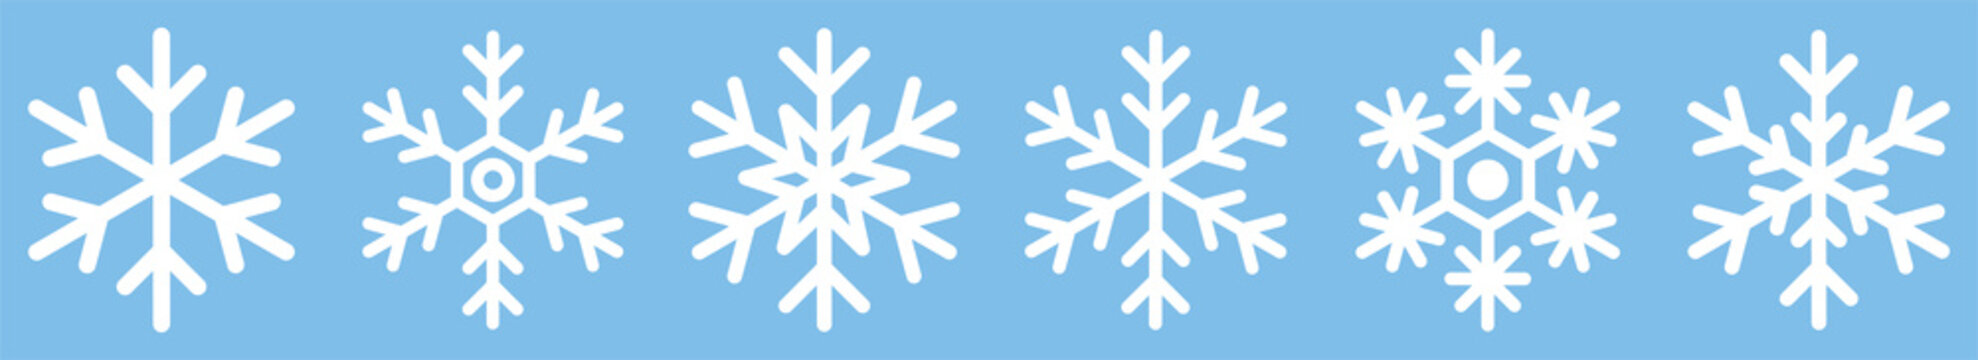 Snowflake different icons. Vector illustrator